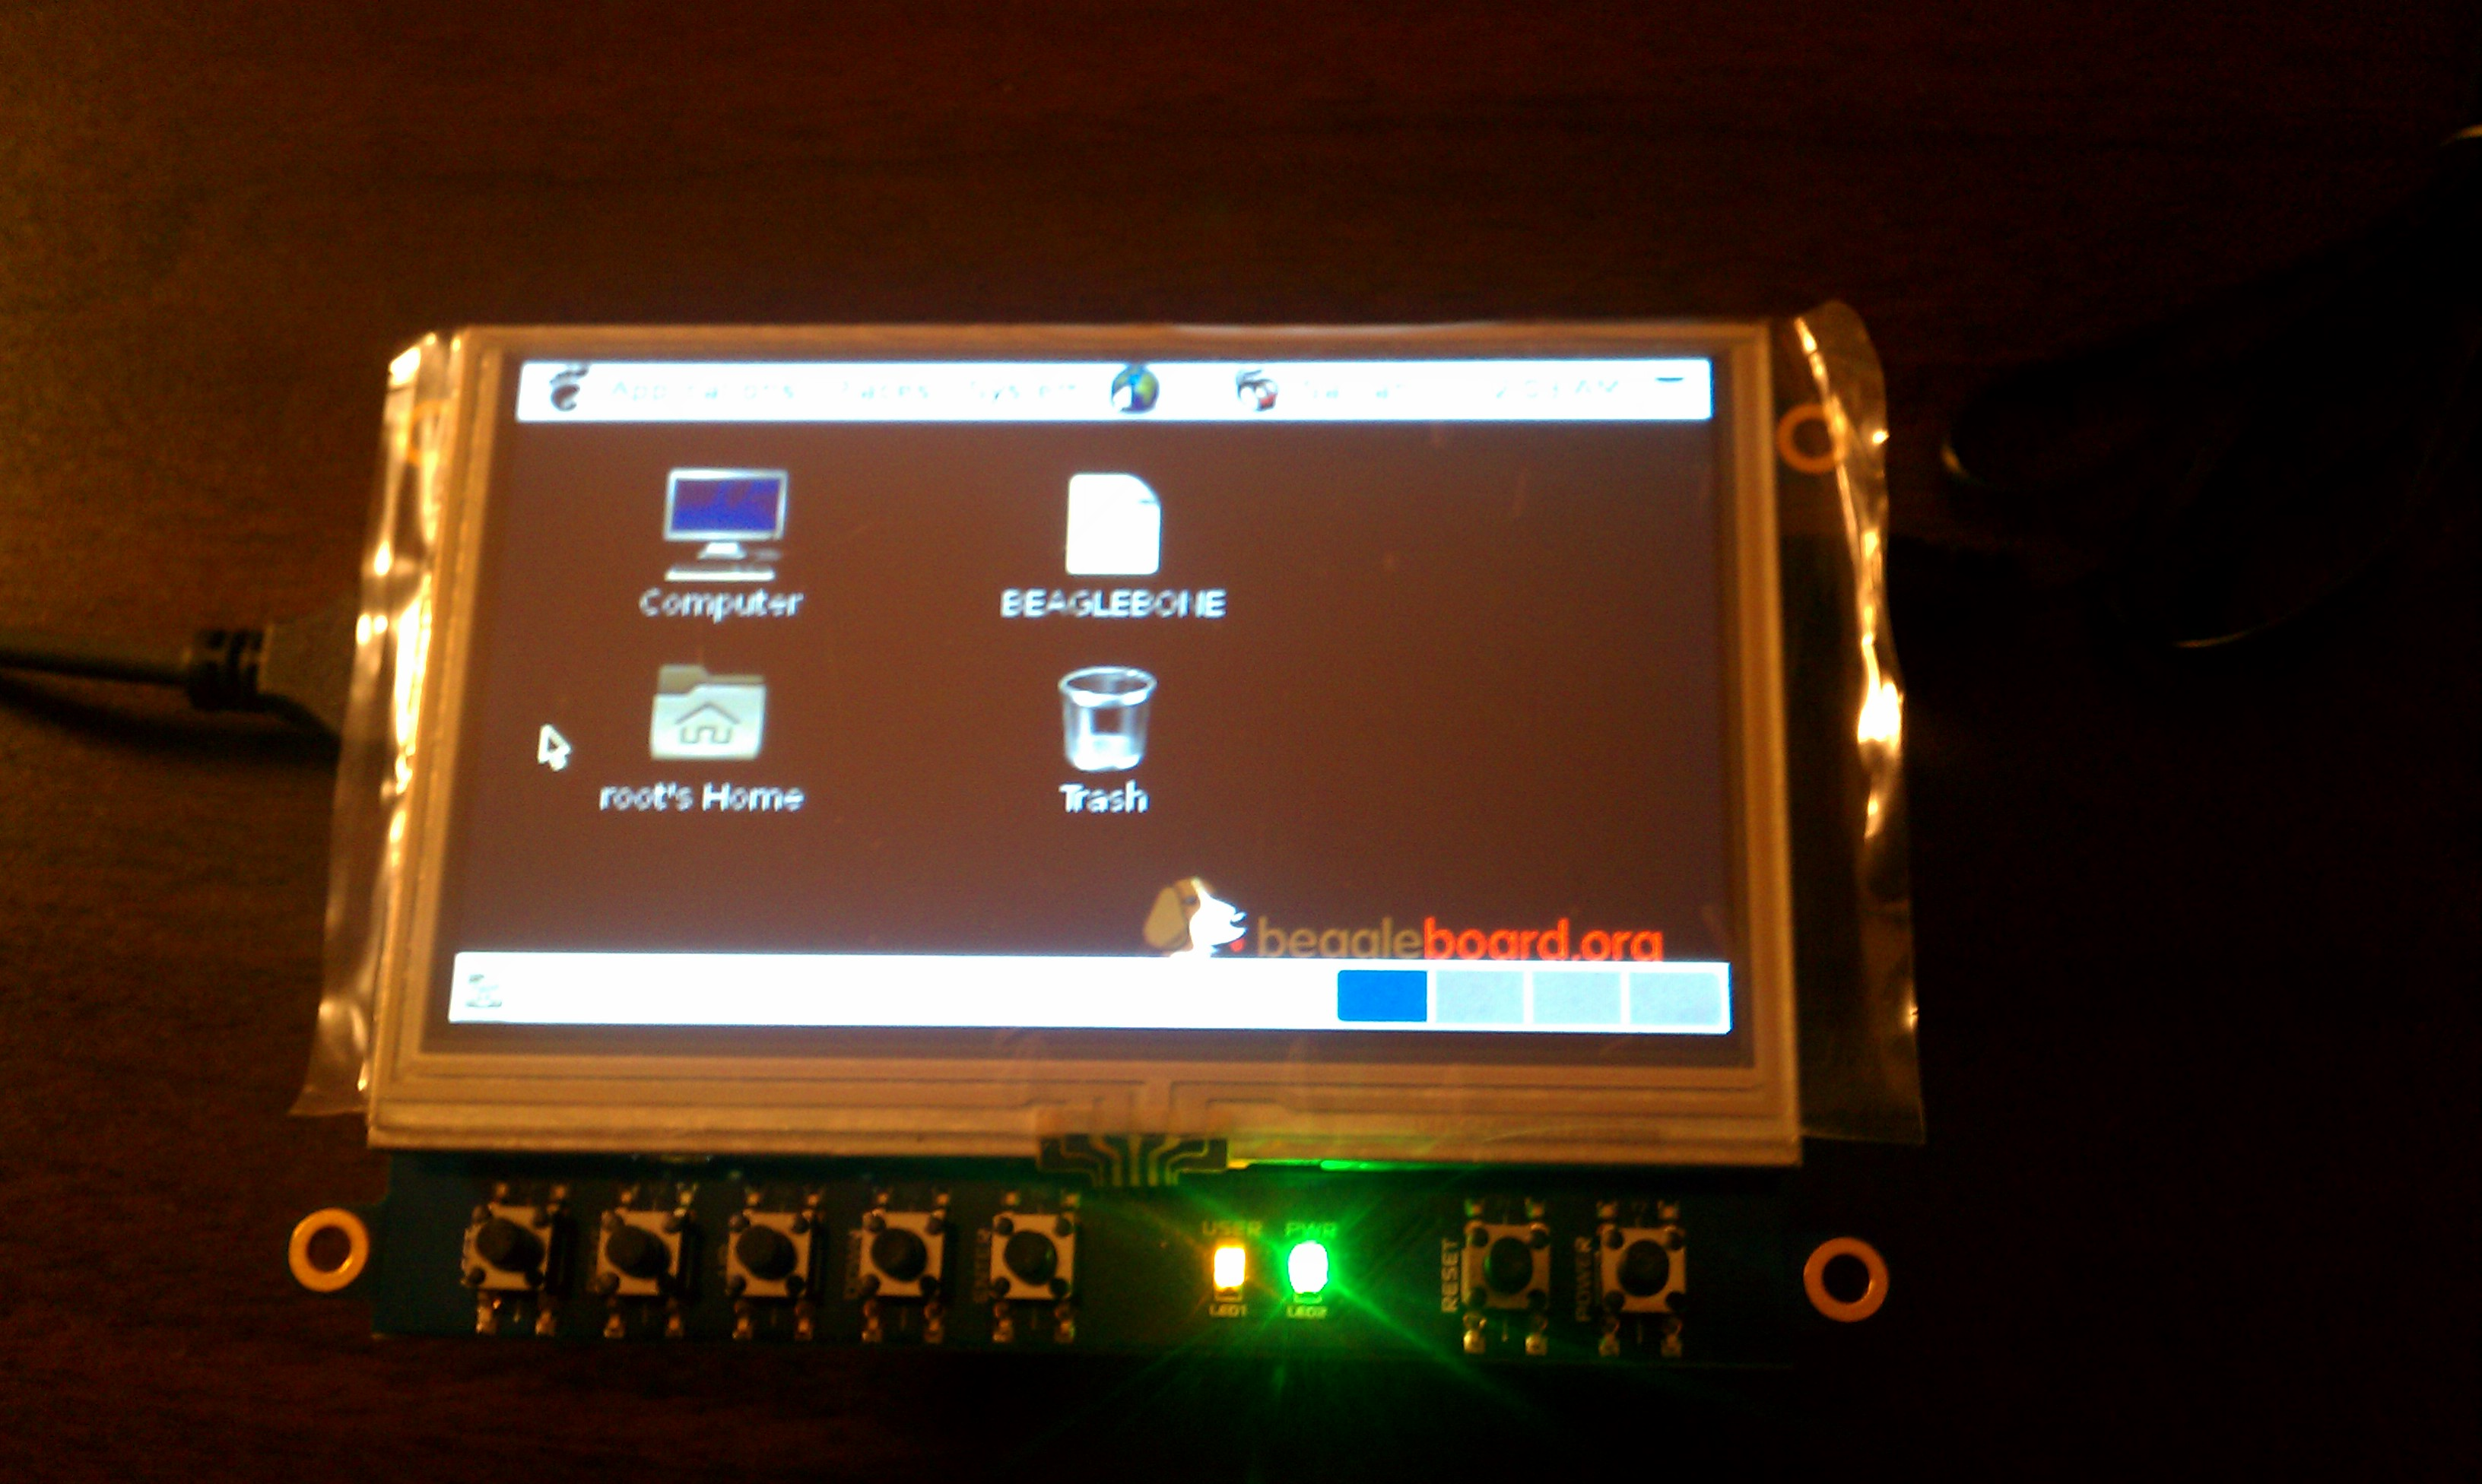 Boot android on beaglebone black from SD card - Processors